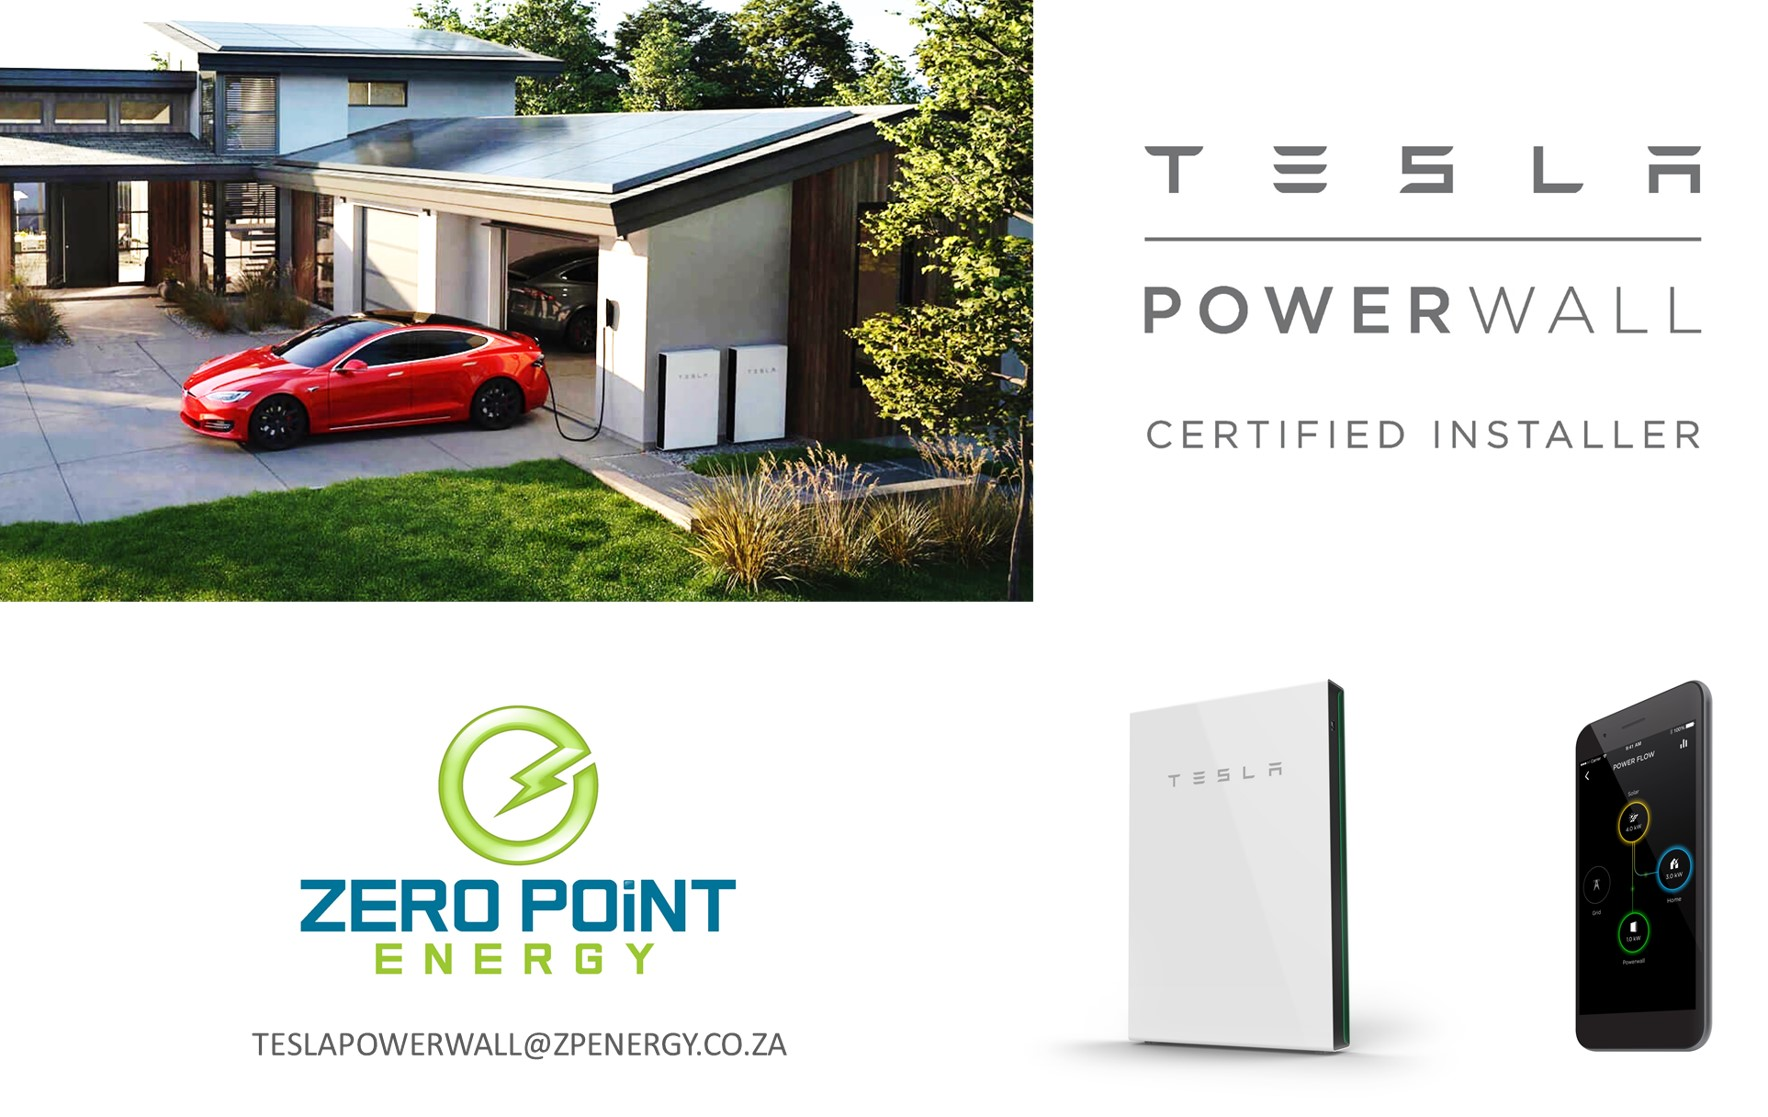 tesla powerwall2 zero point energy